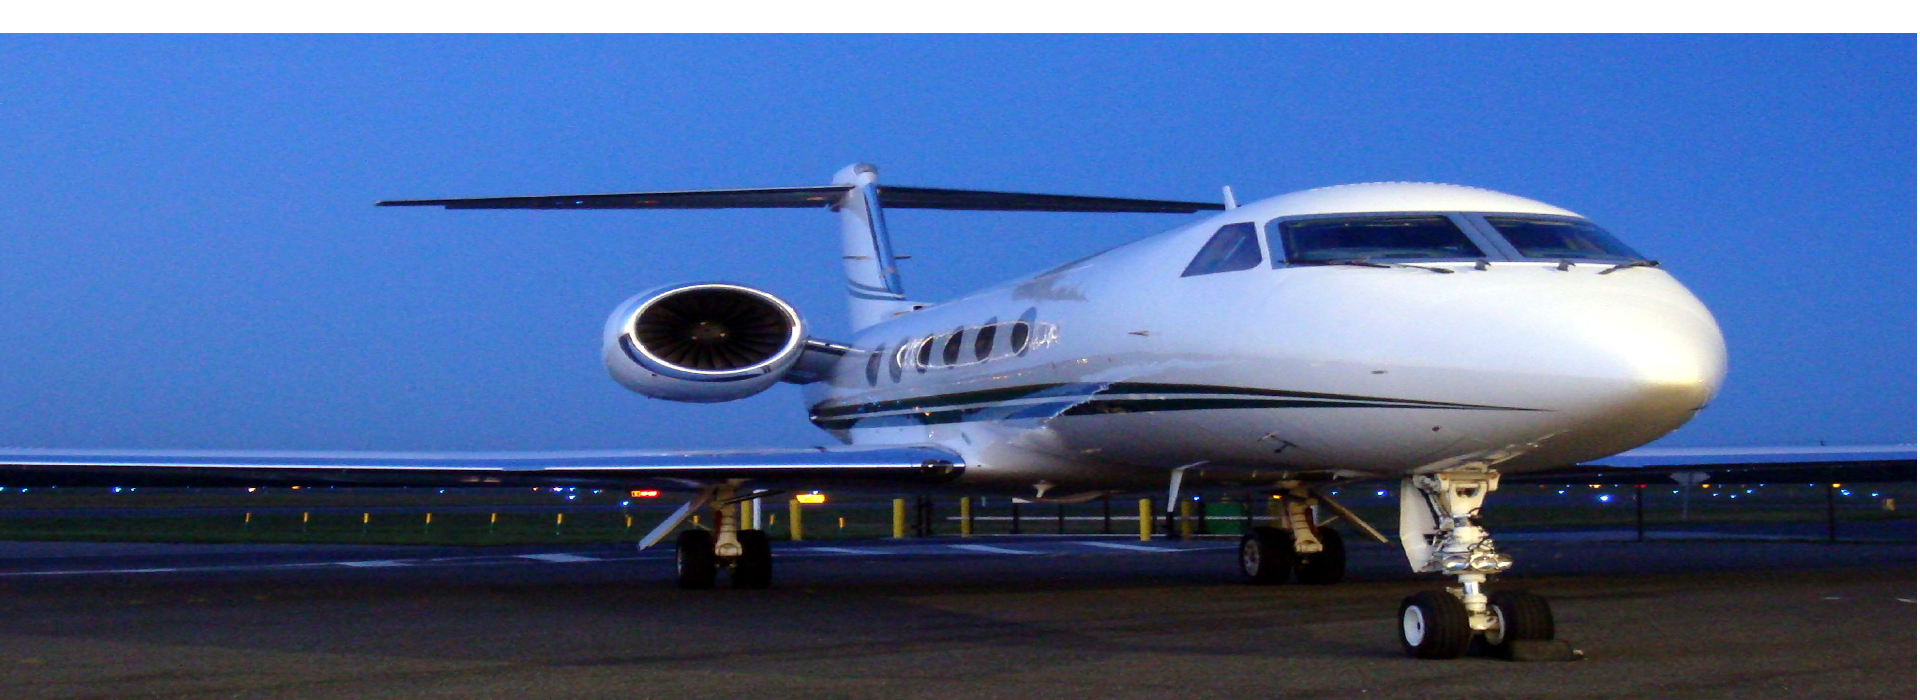 Need a lift from the airport?  A2B Transit provides limo and shuttle pickups from all the areas airports.  Call us for your next airport transportation needs 844.354.6622.